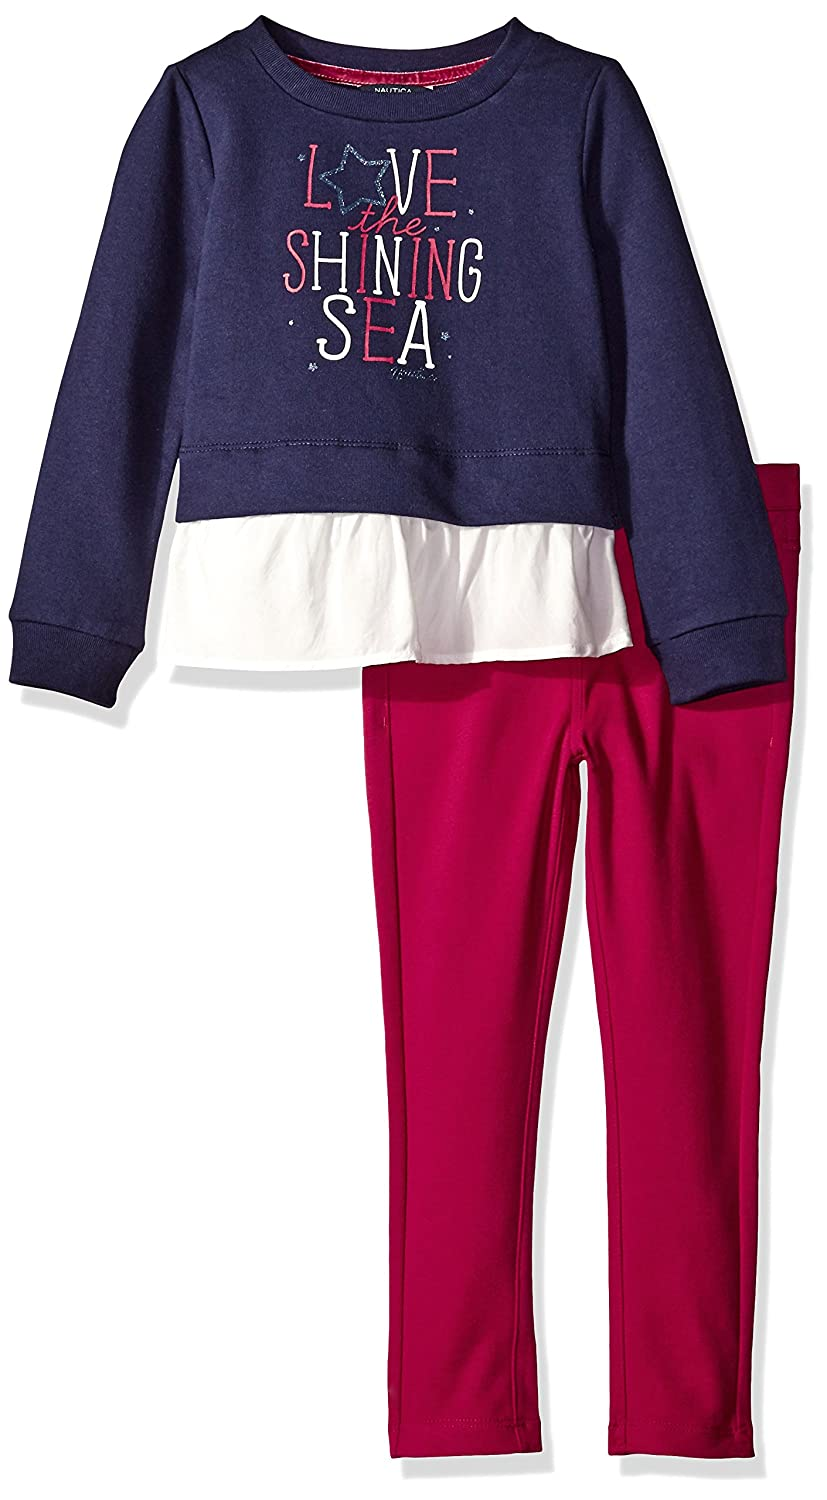 Nautica Girls' Two Piece Long Sleeve Legging Sets 36NDK0400Q1-101-P6